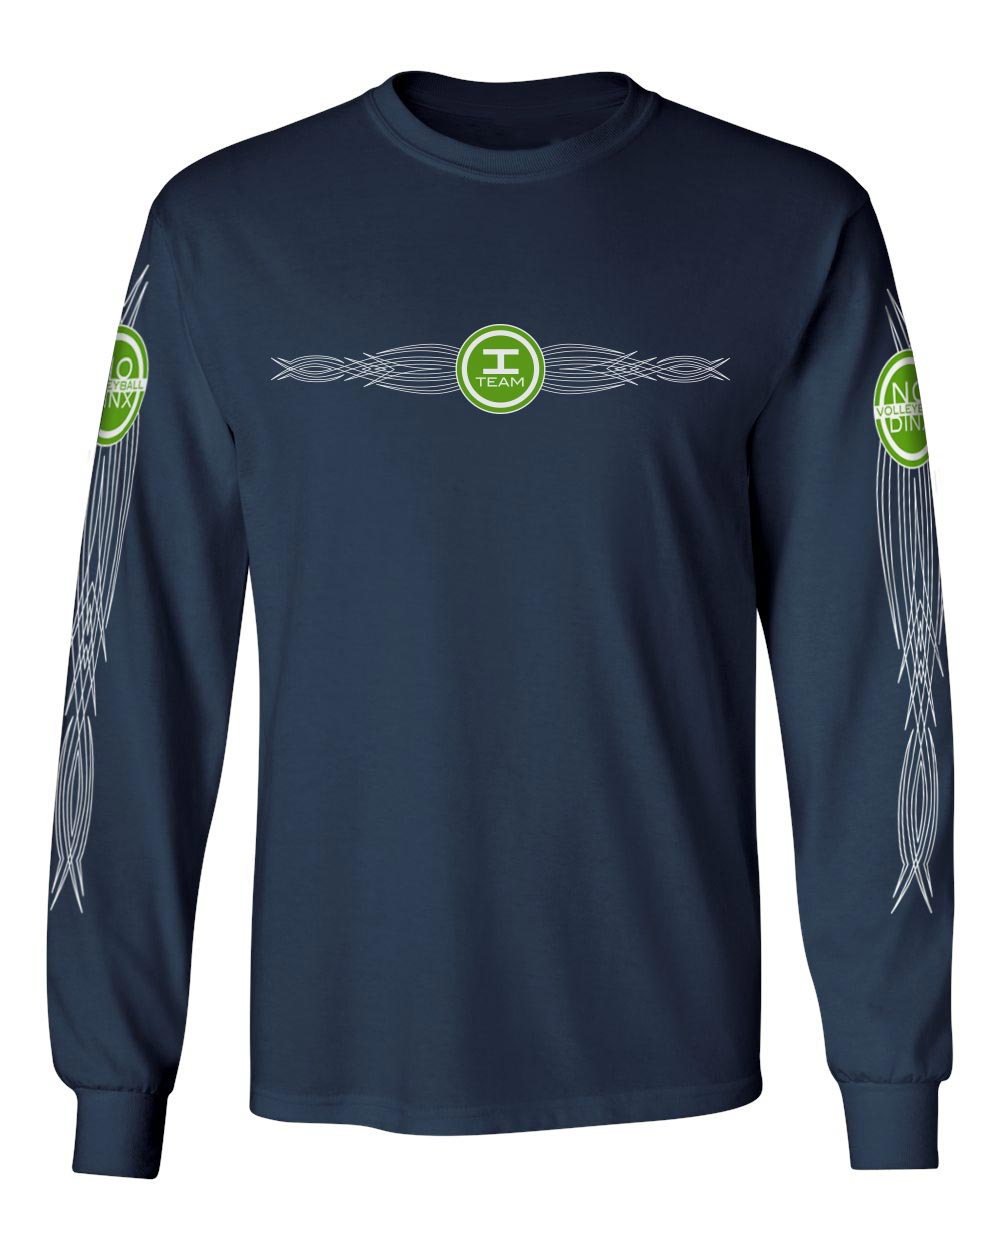 iTeam Long Sleeve Shirt - No Dinx Volleyball